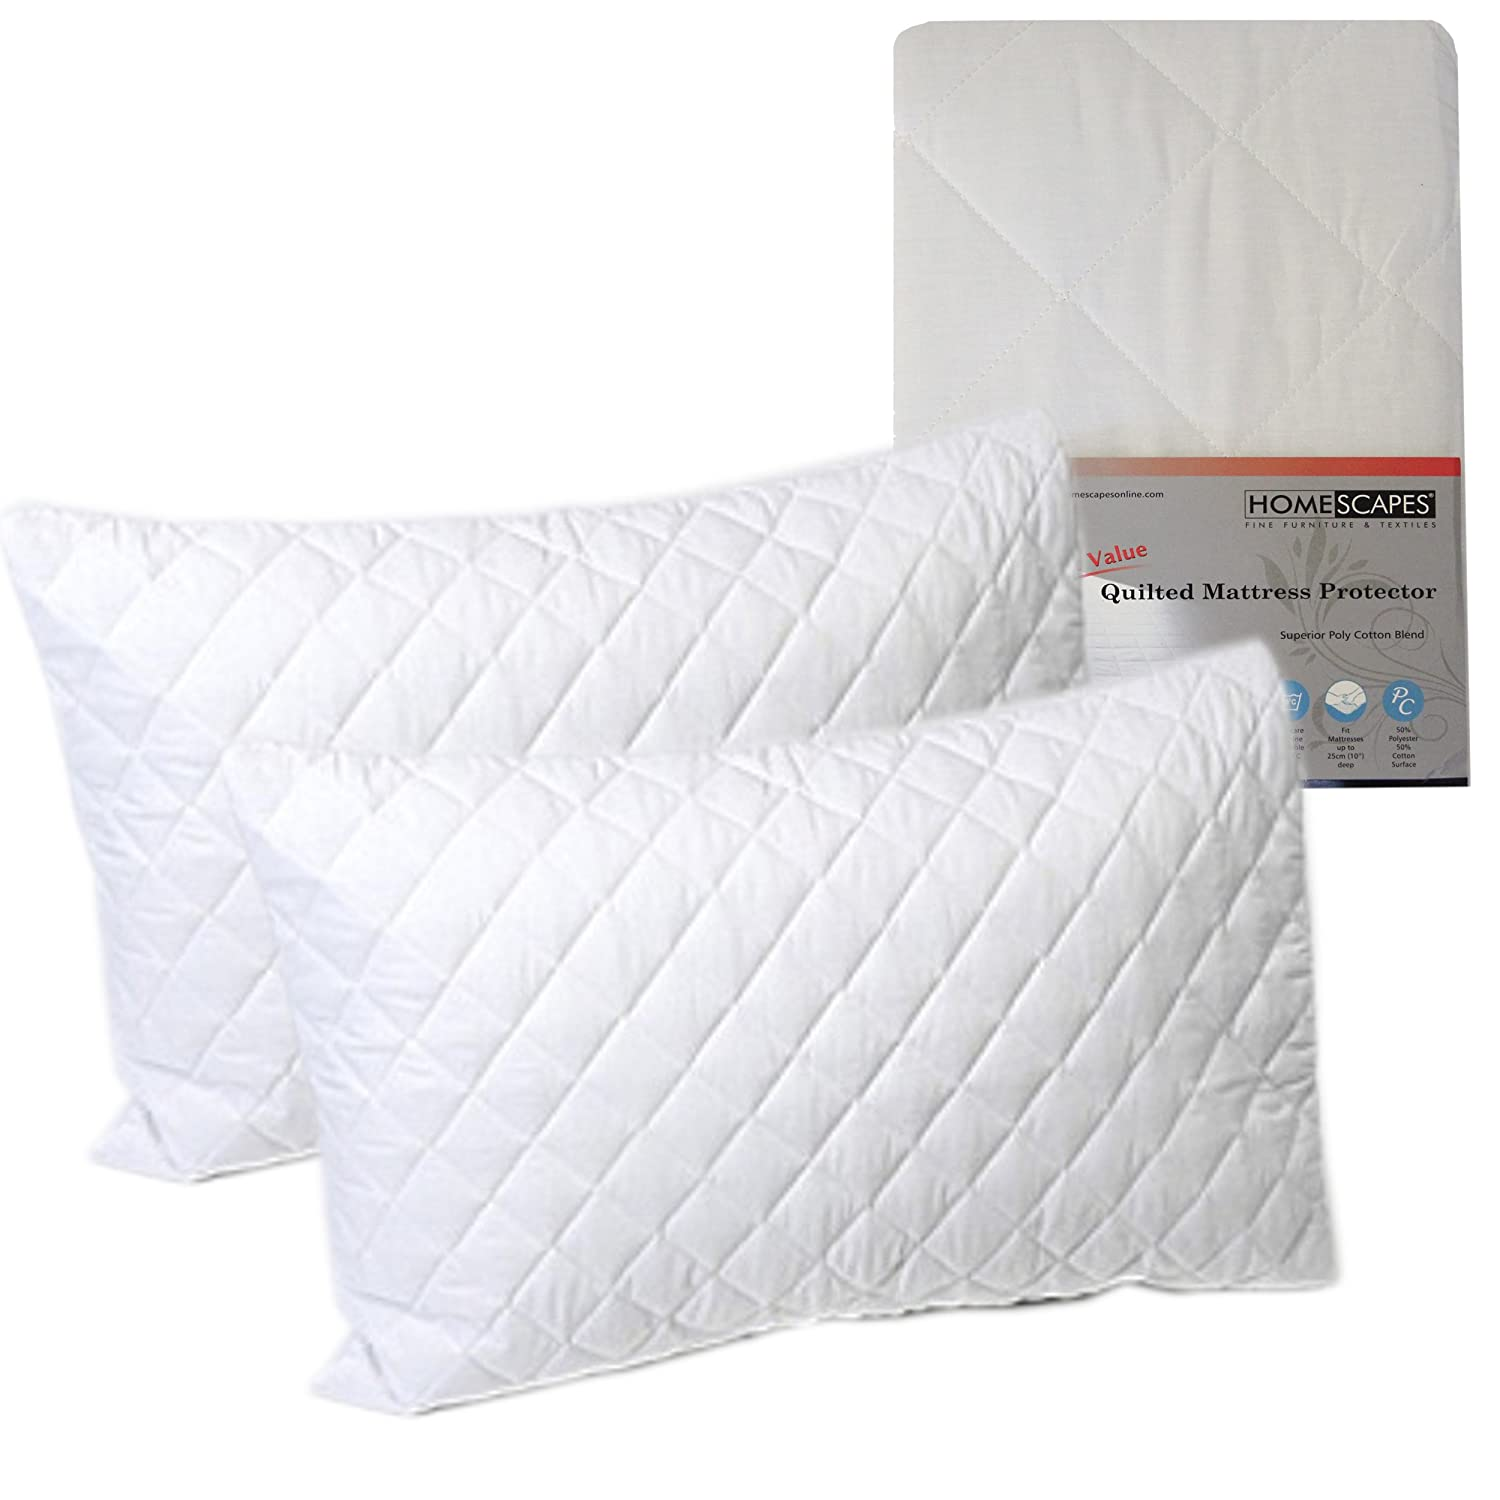 LIMITED OFFER **Homescapes Polycotton Quilted Pillow Protectors 2 ... : quilted pillow protector - Adamdwight.com